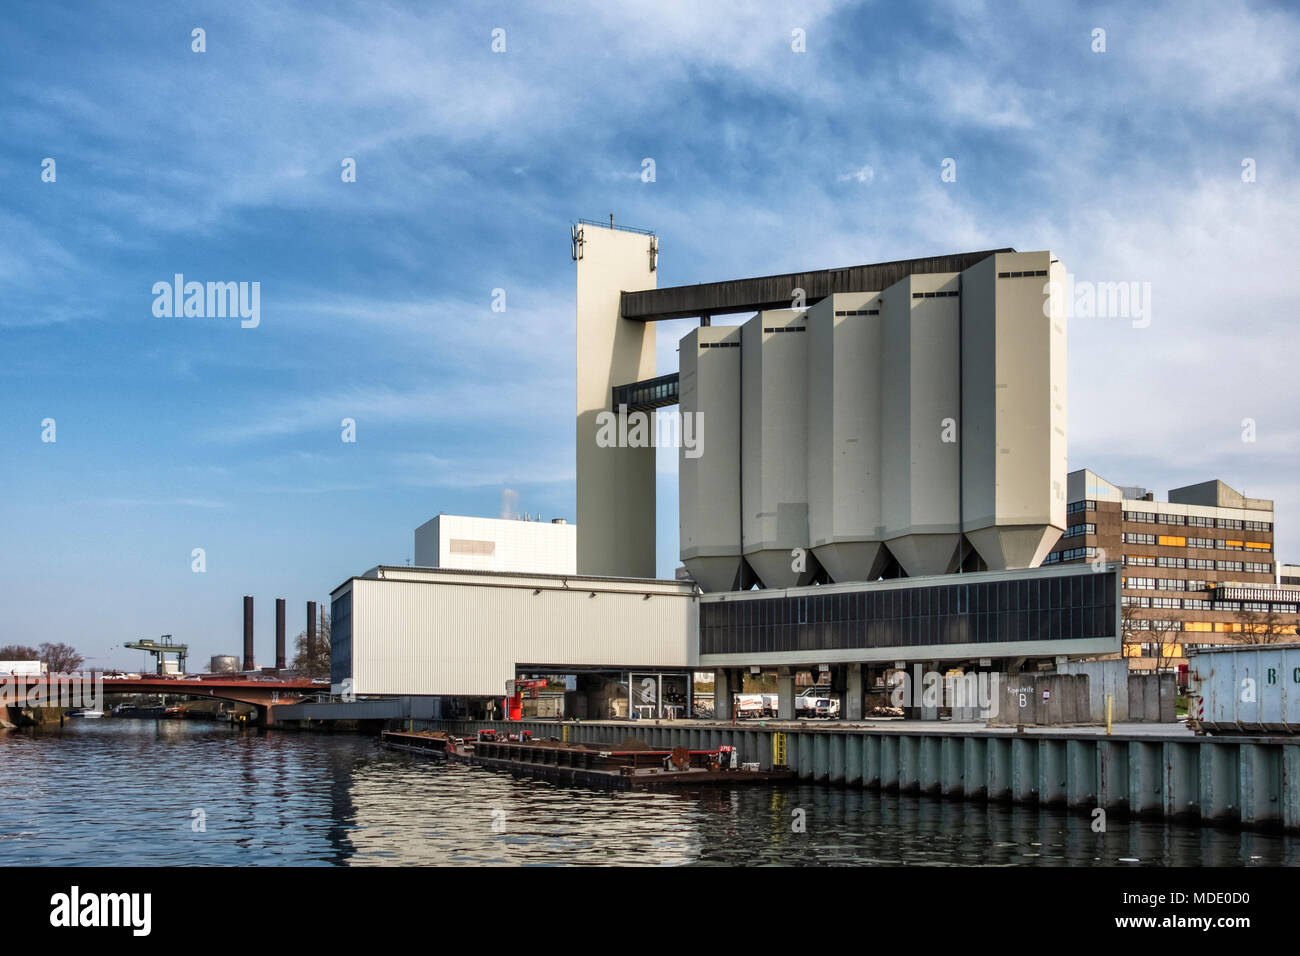 Berlin-Moabit,Berlin-Spandau shipping canal. Urban landscape view of industrial architecture. Silo and power station buildings Stock Photo